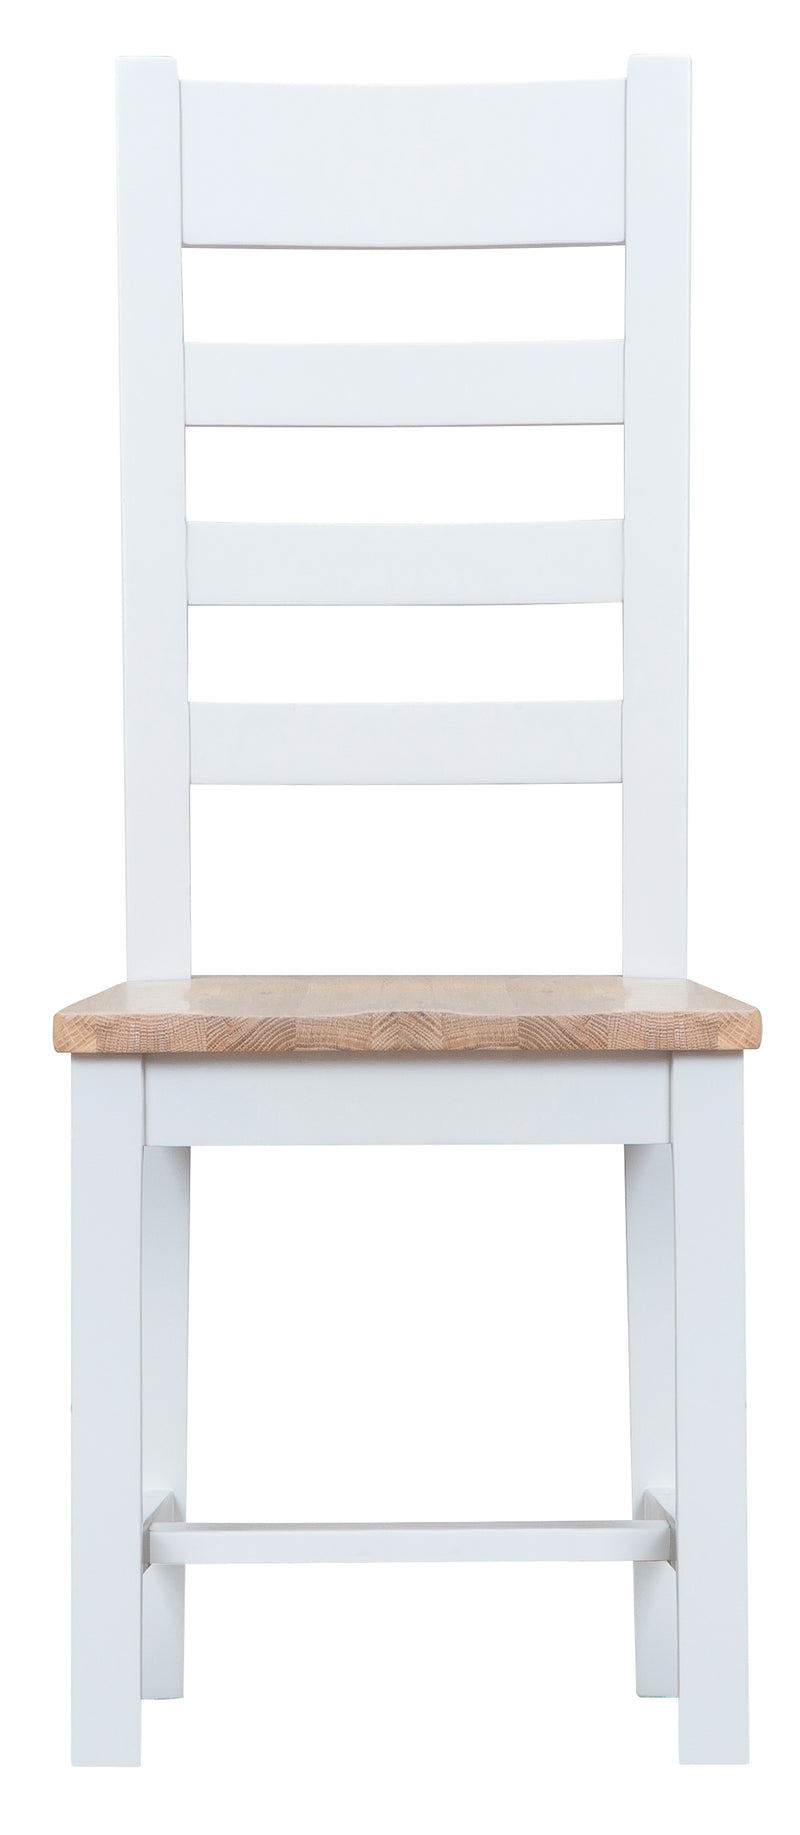 St Ives Hand-Painted White Ladder Back Chair with Wooden Seat